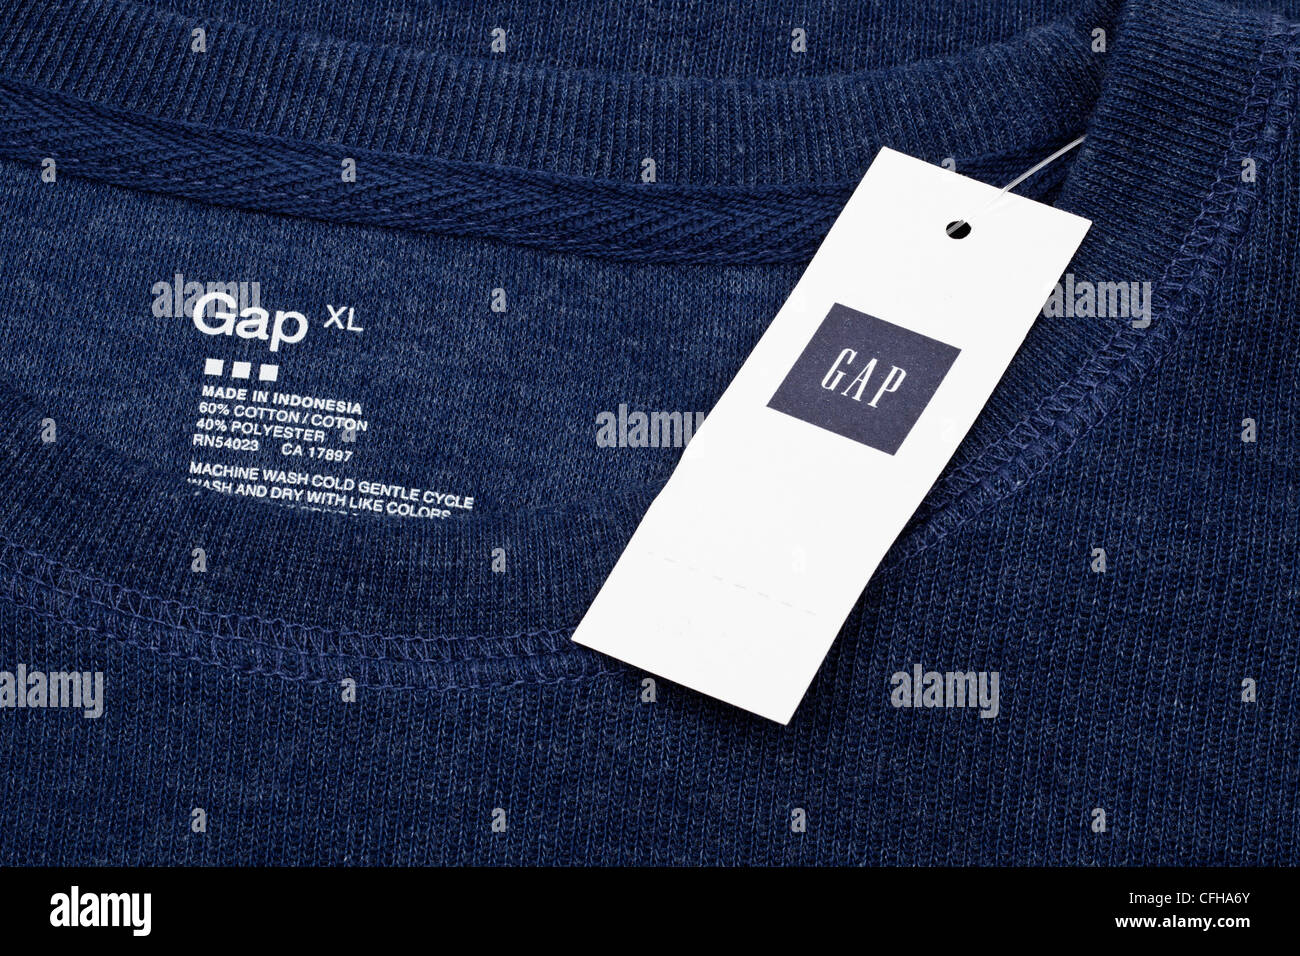 Gap top with clothes labels and tag - Stock Image